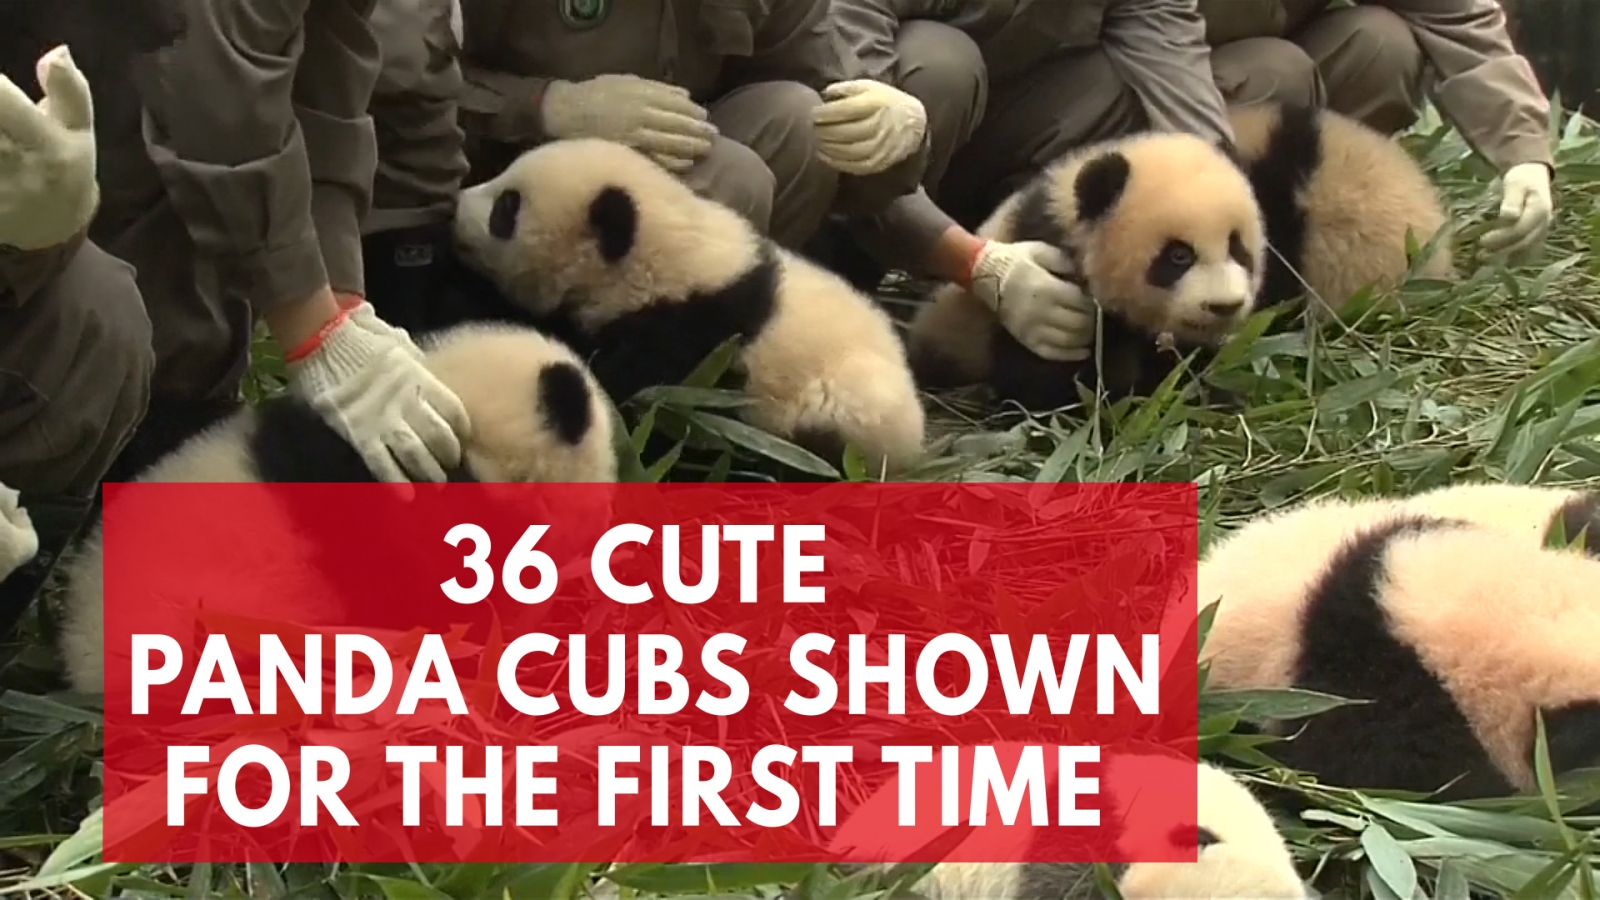 cuteness-overload-as-36-giant-panda-cubs-make-first-public-appearance